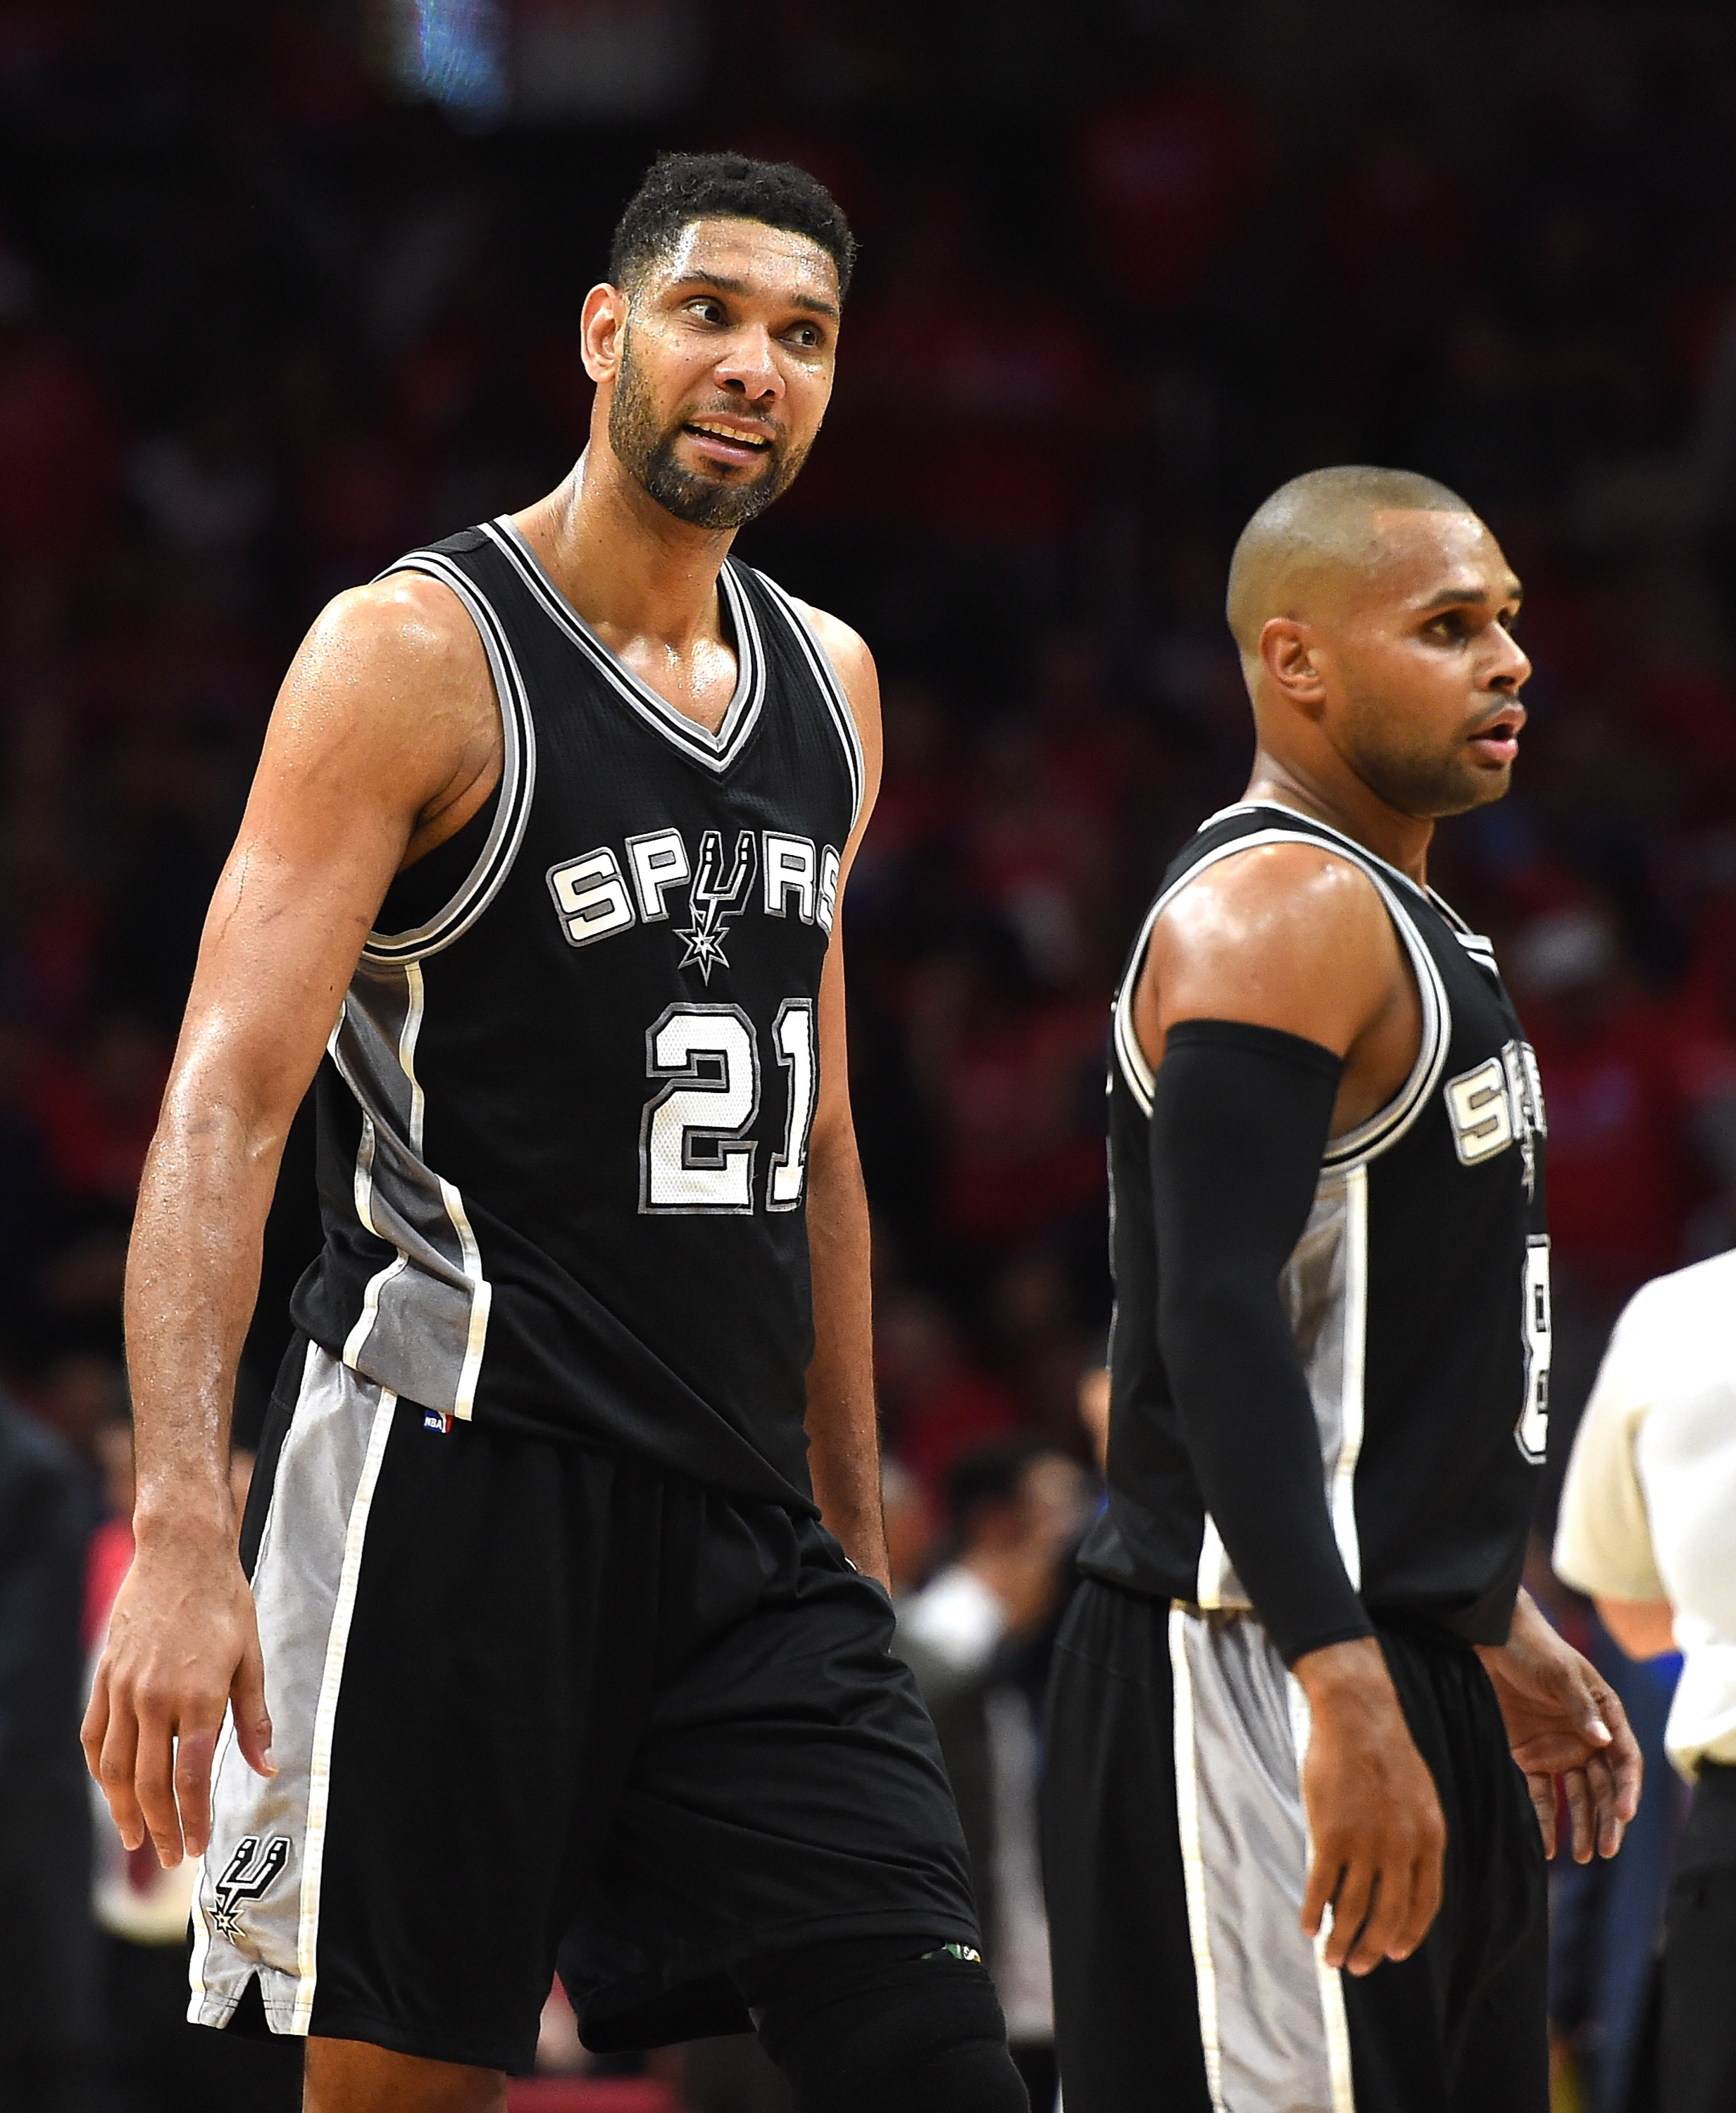 Tim Duncan had a game with no rebounds for the first time ever